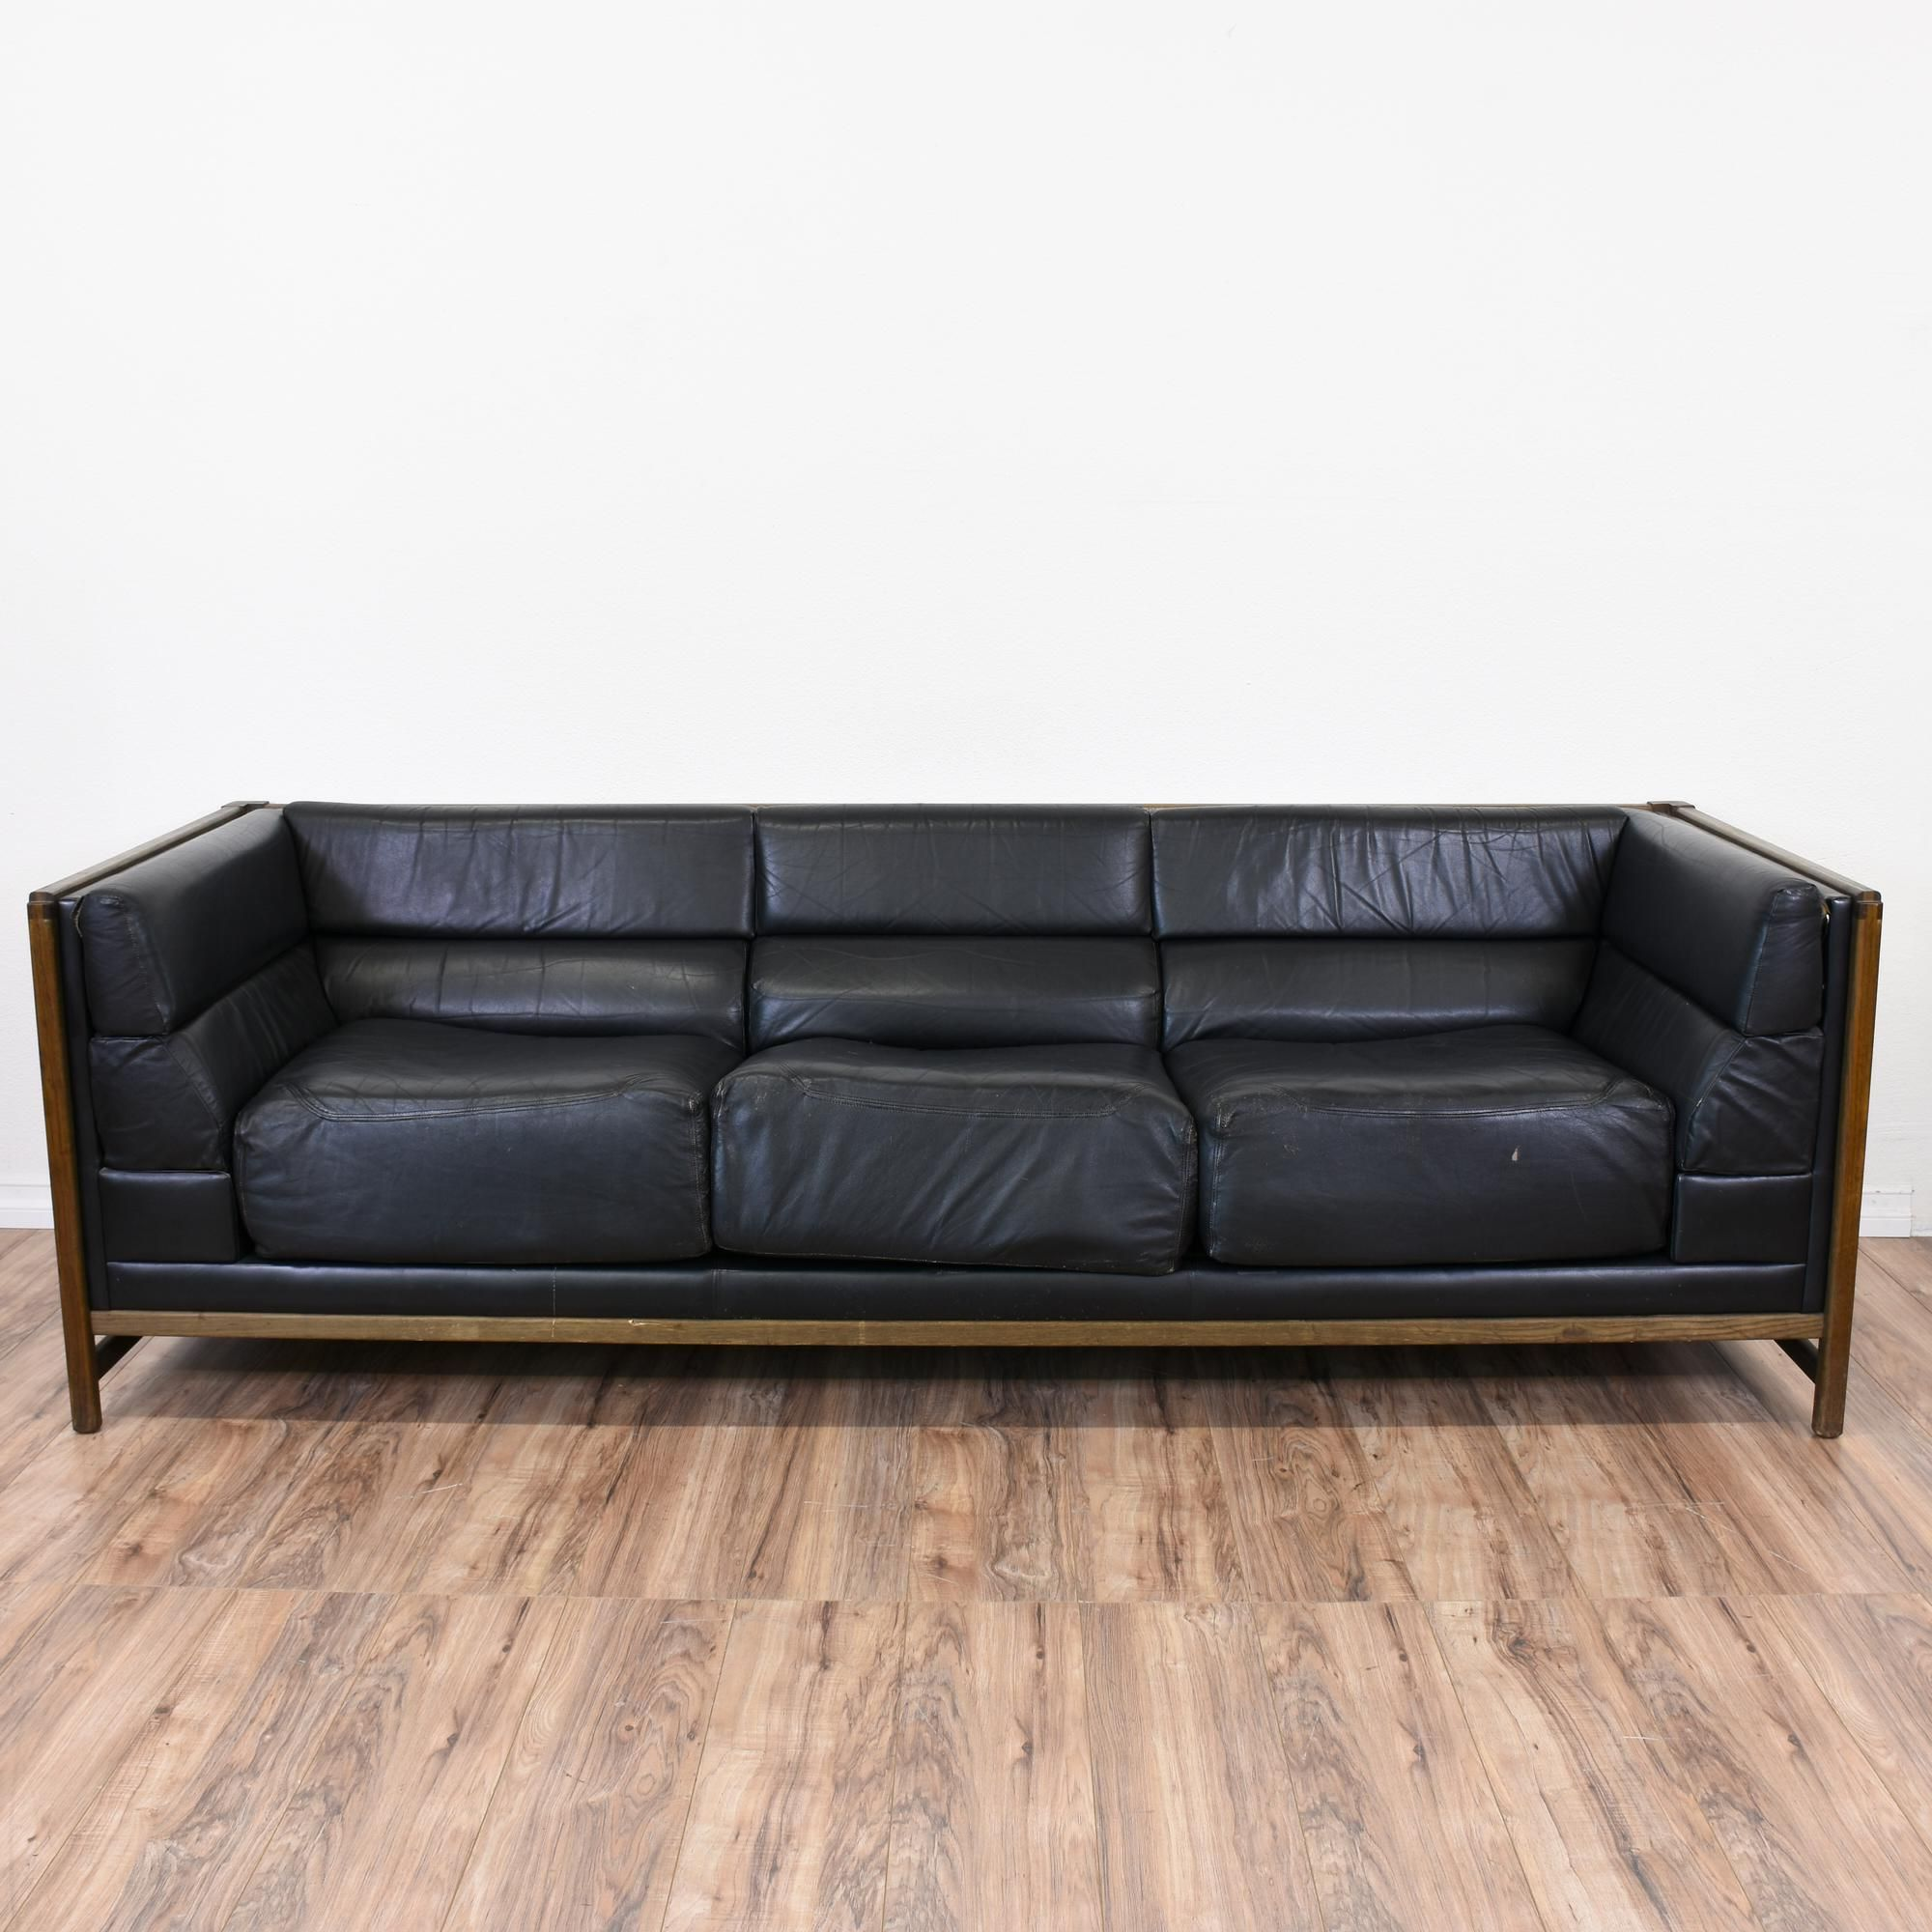 This Mid Century Modern Sofa Is Upholstered In A Durable